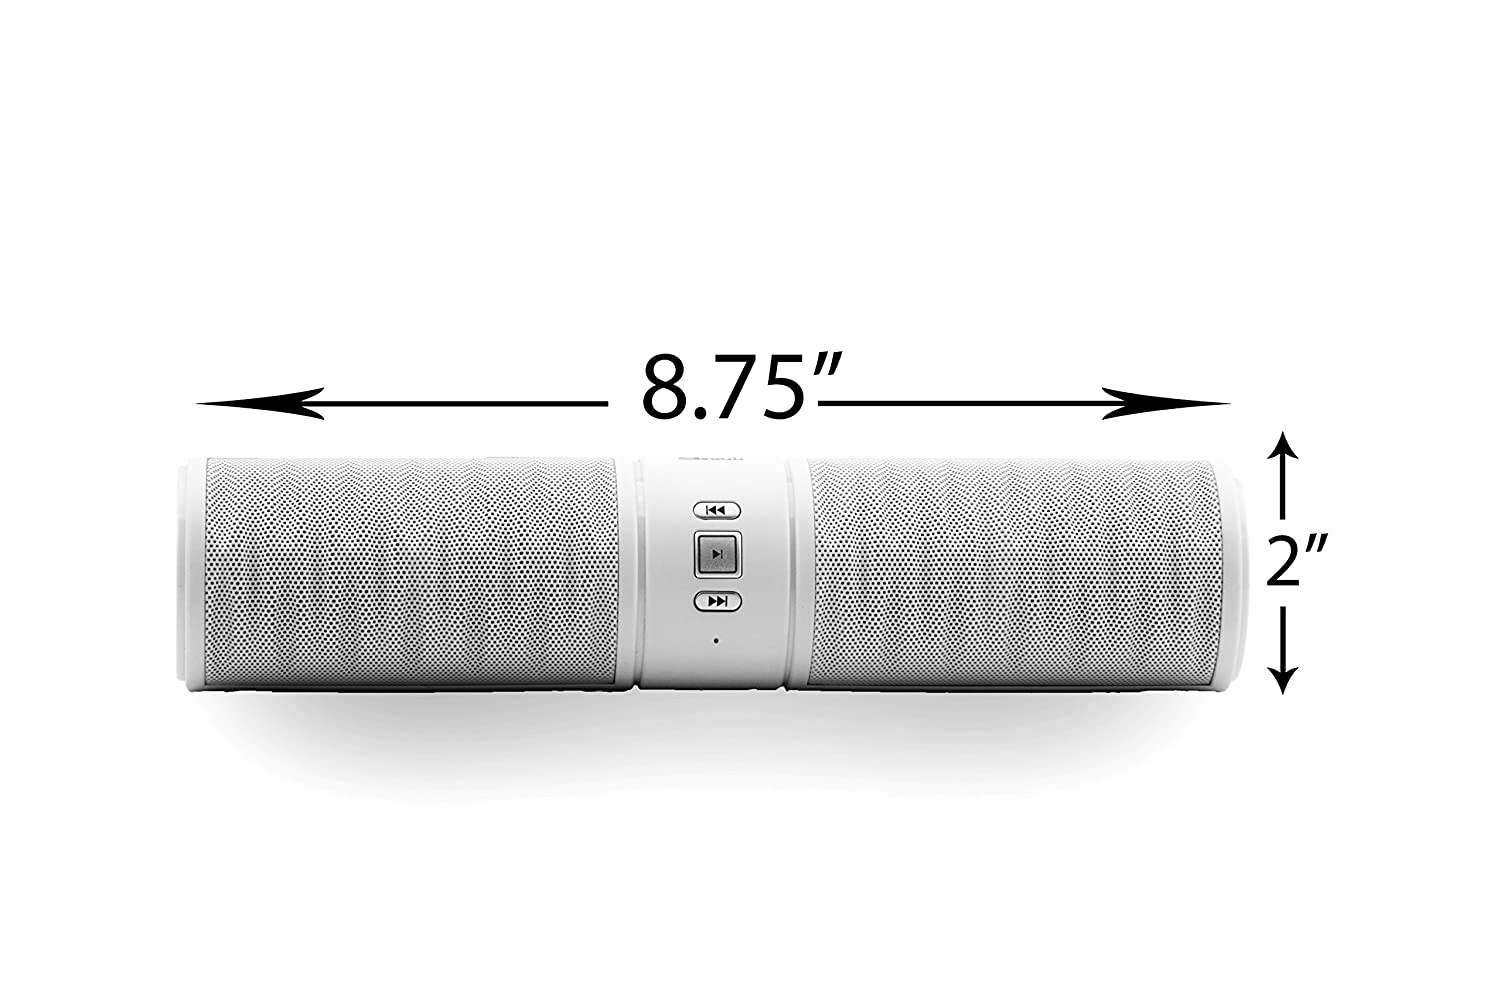 Wireless Bluetooth Speaker, Roll (White) Ultra-portable , Powerful Sound with Build in Microphone, Works for Iphone 4, 4s, 5, 5s, 6, 6 Plus, Ipad Mini, Ipad 4/3/2, Itouch, Blackberry, Nexus, Samsung, Htc, Lg and Other Smart Phones, Tablets and Mp3 Player матовое защитное стекло ainy для apple iphone 7 plus